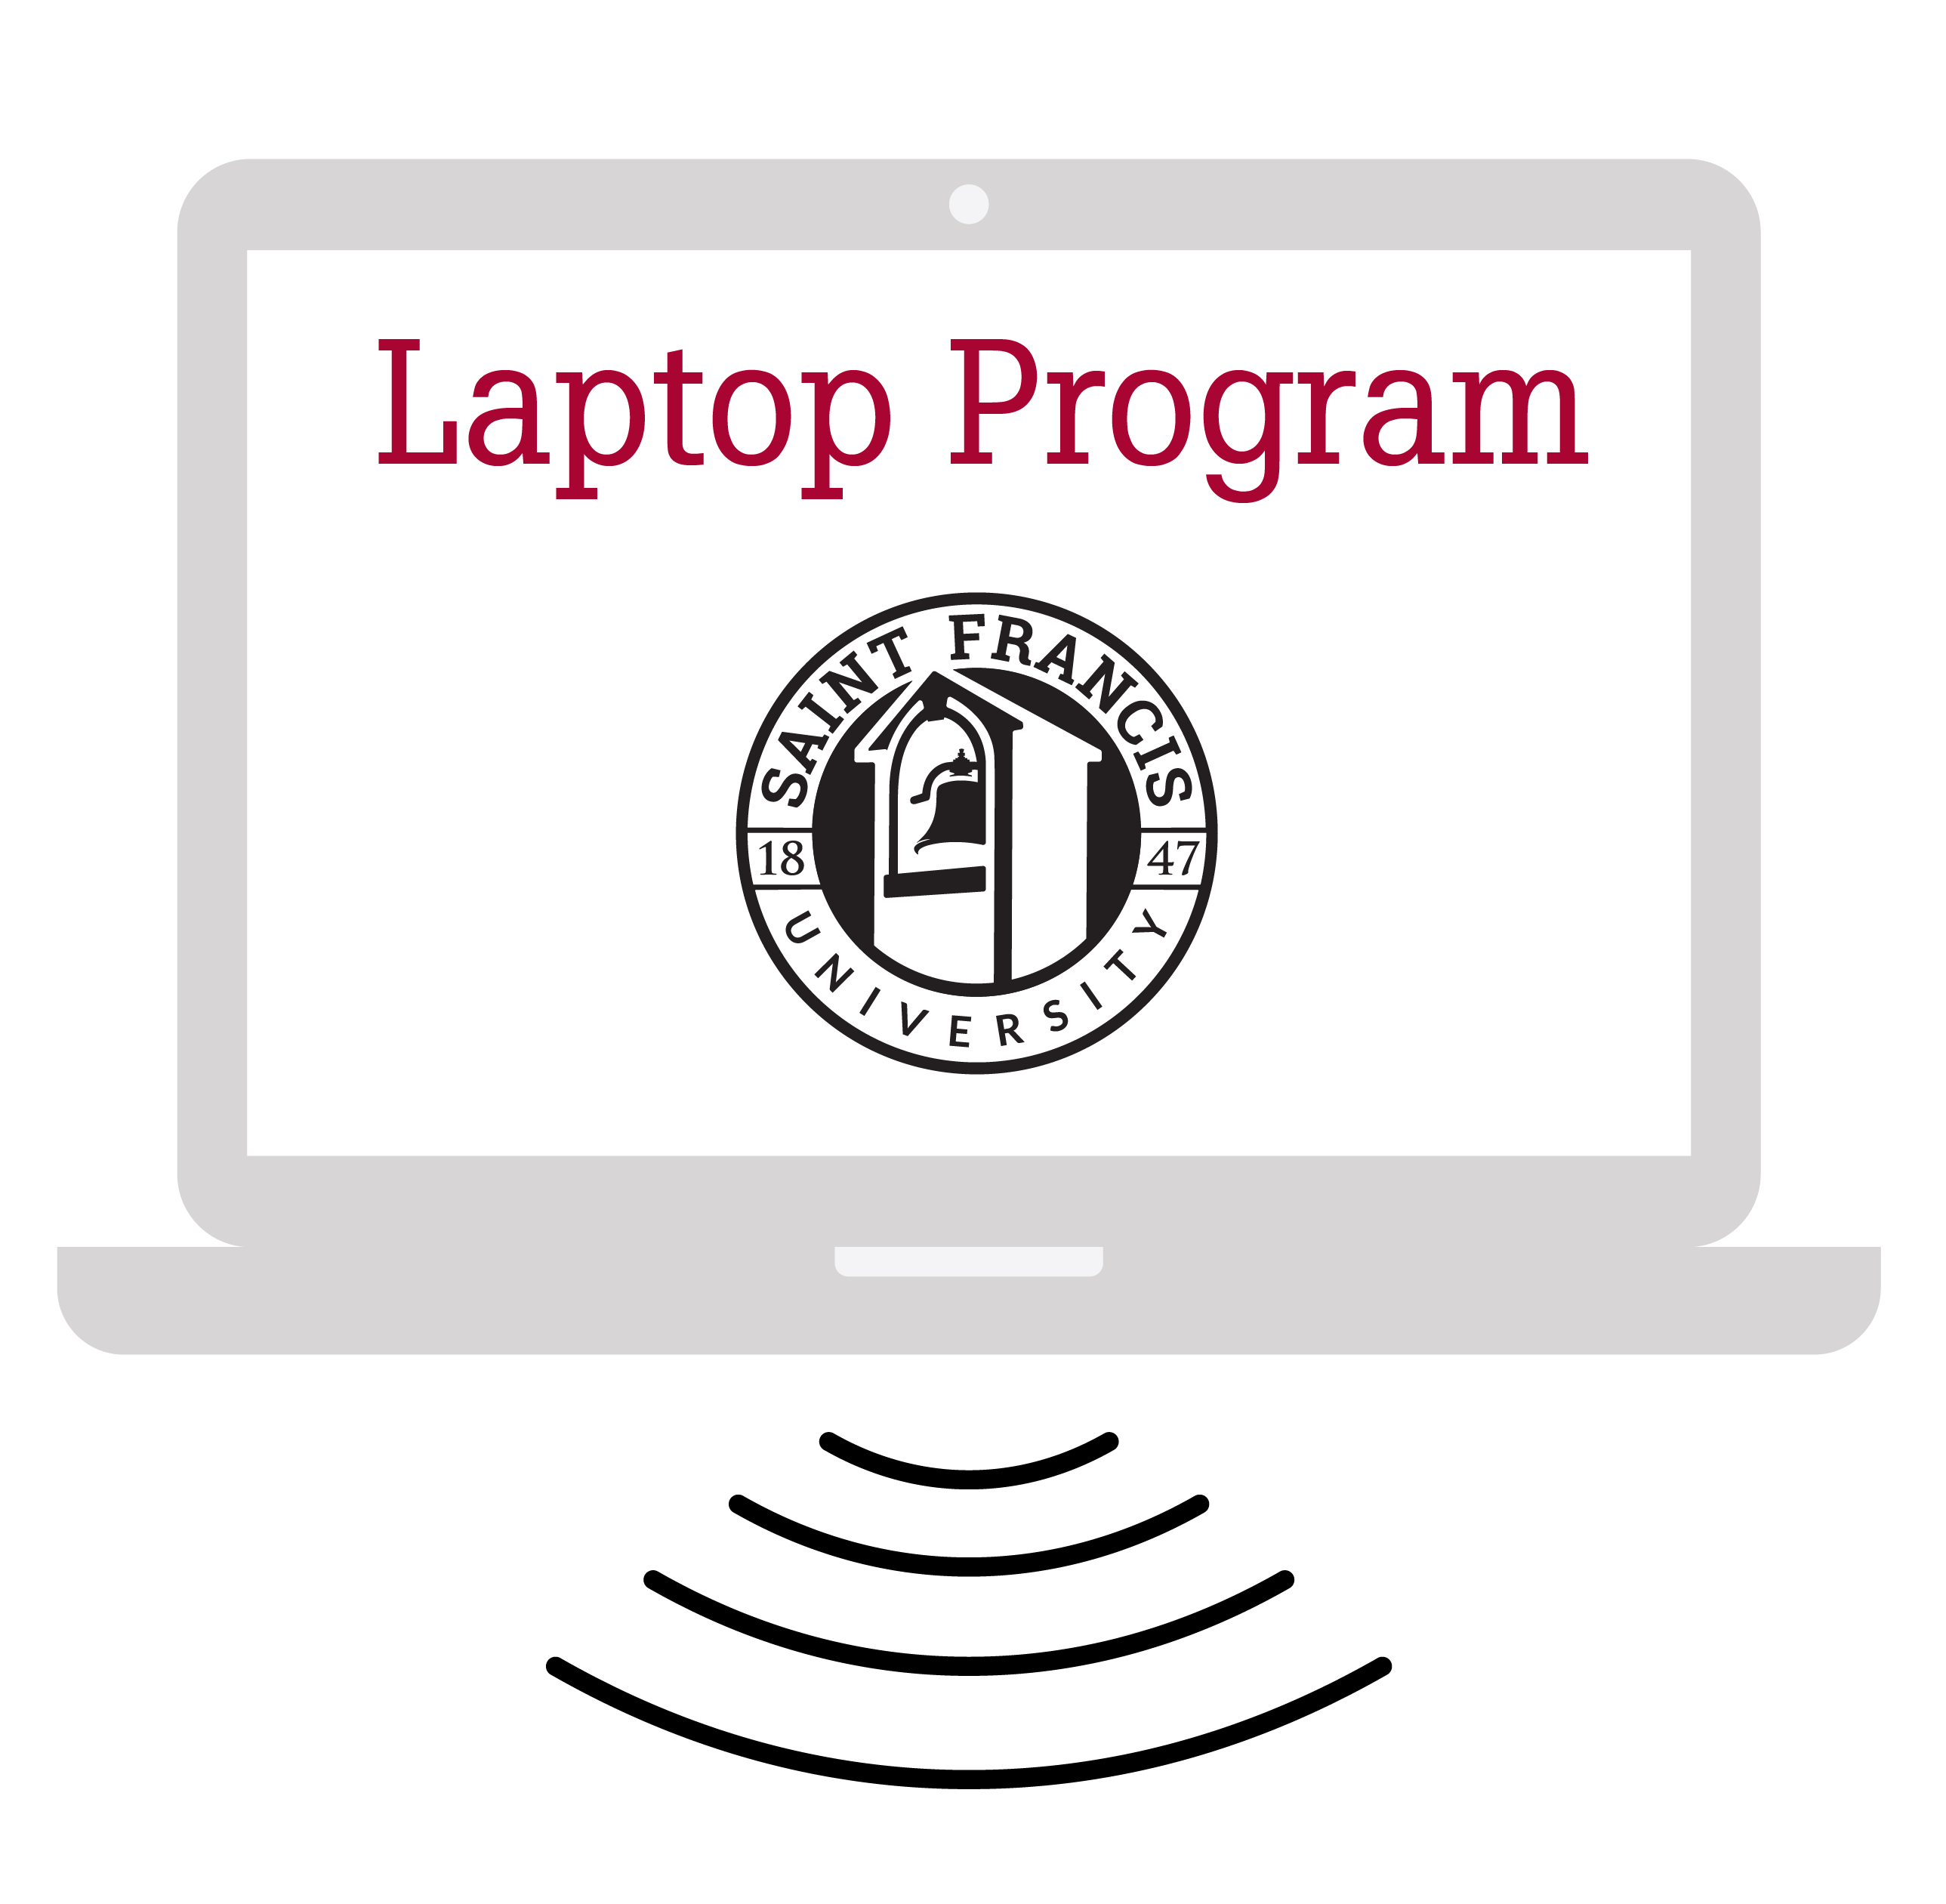 Laptop Program